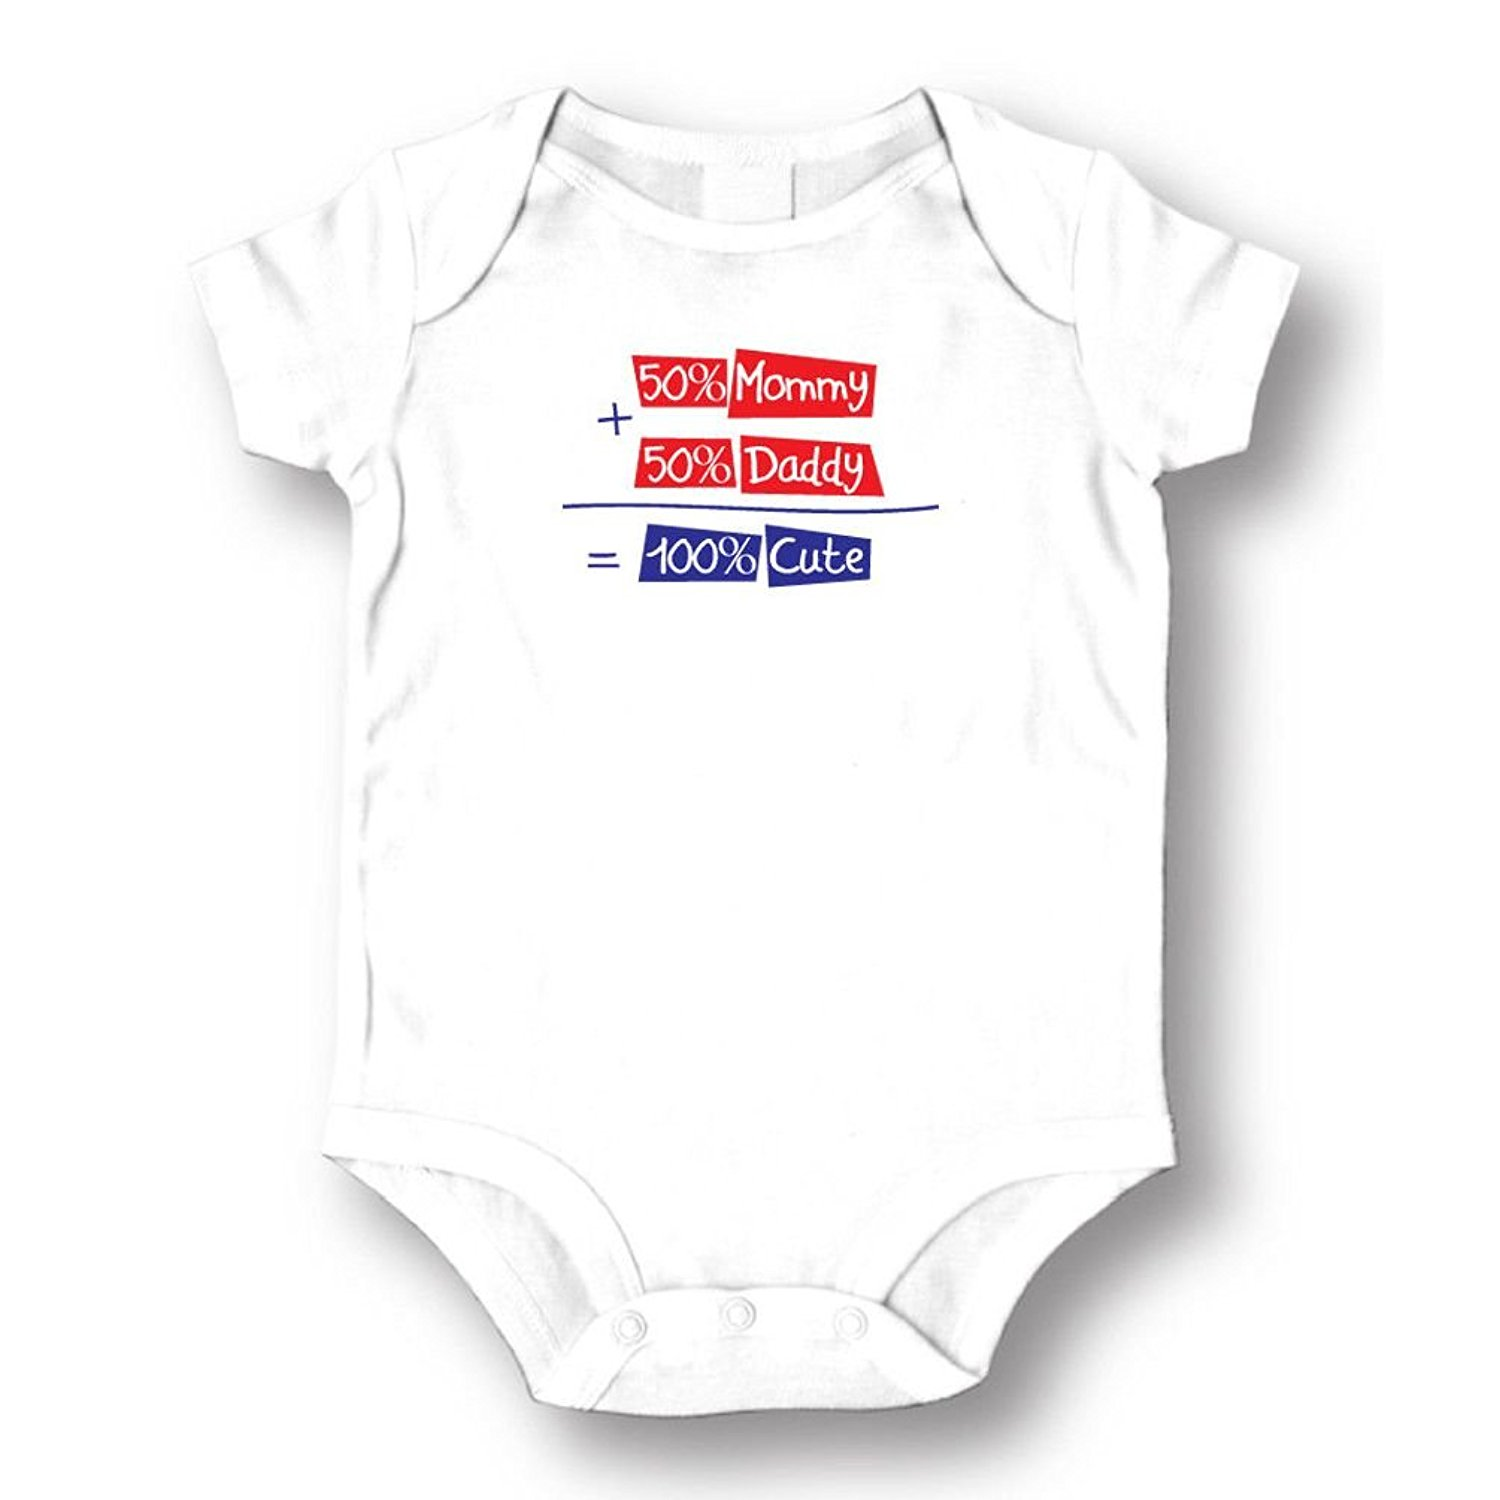 Dustin clothing series 50% Mummy 50% Daddy 100% Cute Baby Boys Girls Toddlers Funny Romper 0-24M